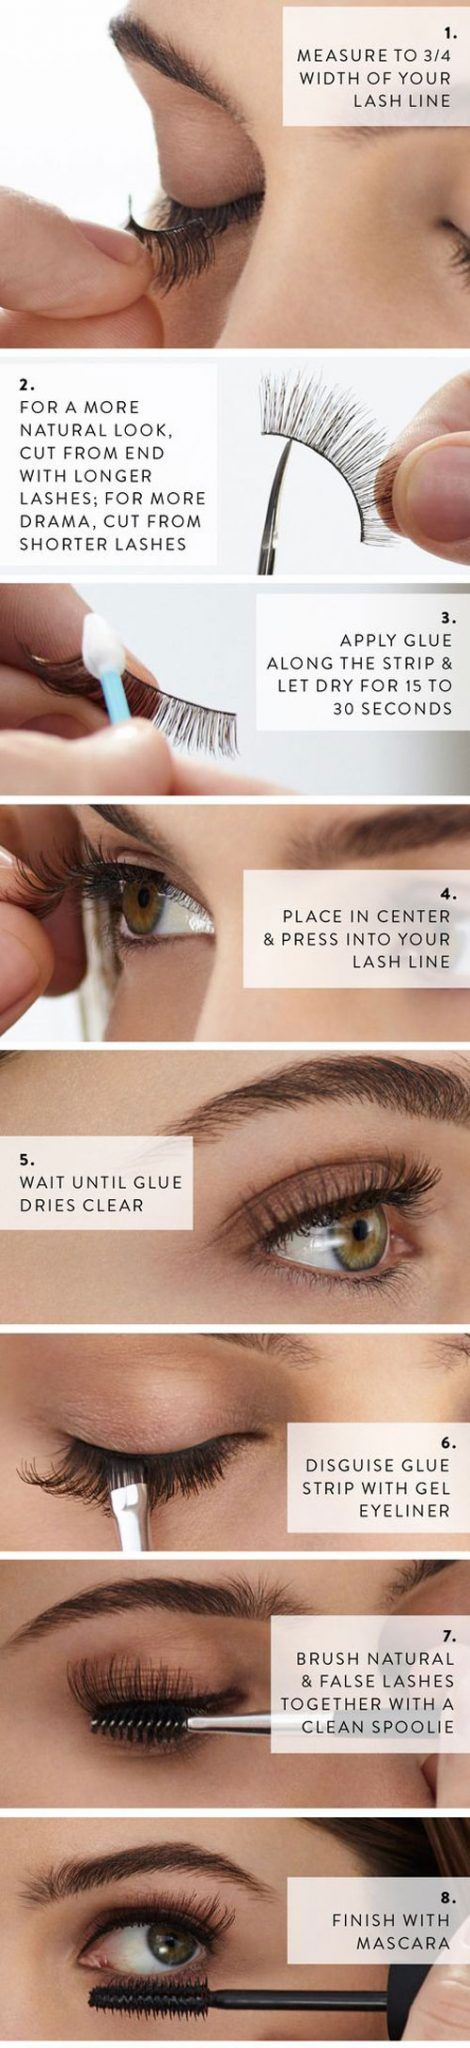 How to Apply False Eyelashes For the First Time (With Pictures